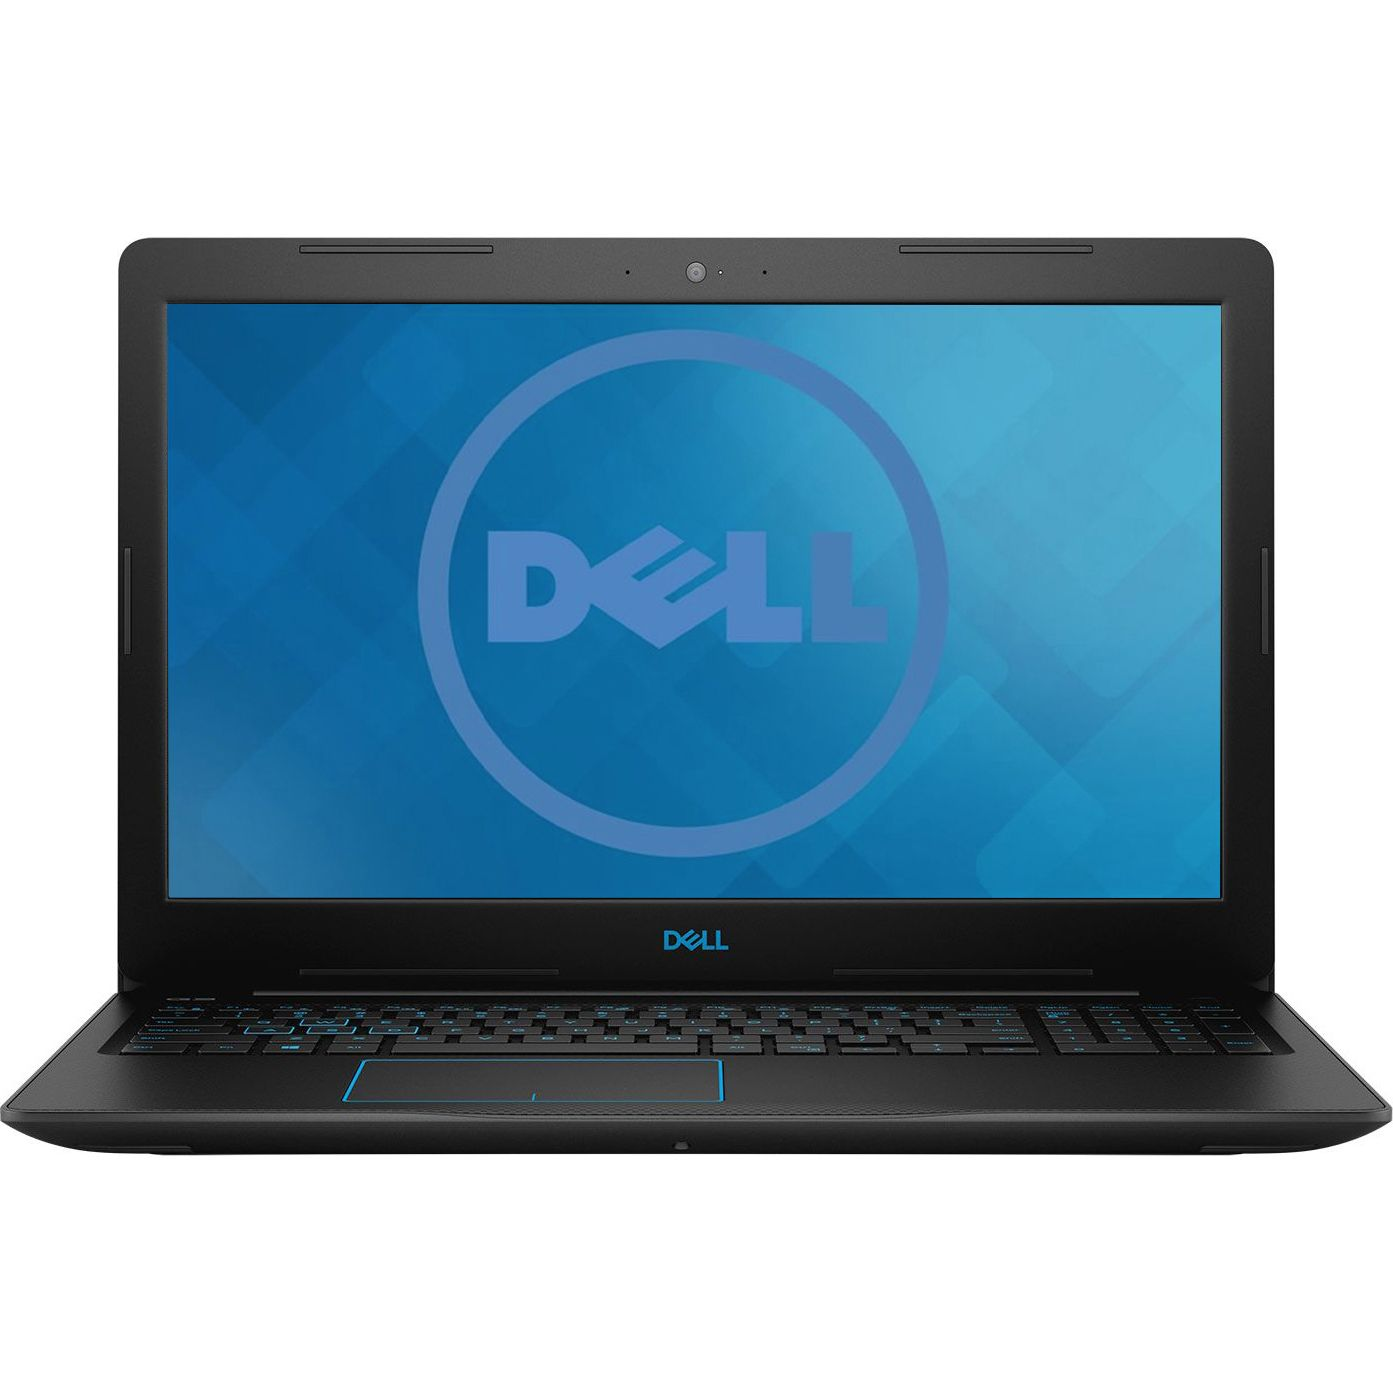 Notebook Dell G3 3579 15.6 Full HD Intel Core i7-8750H GTX 1050 Ti-4GB RAM 16GB SSD 512GB Windows 10 Home